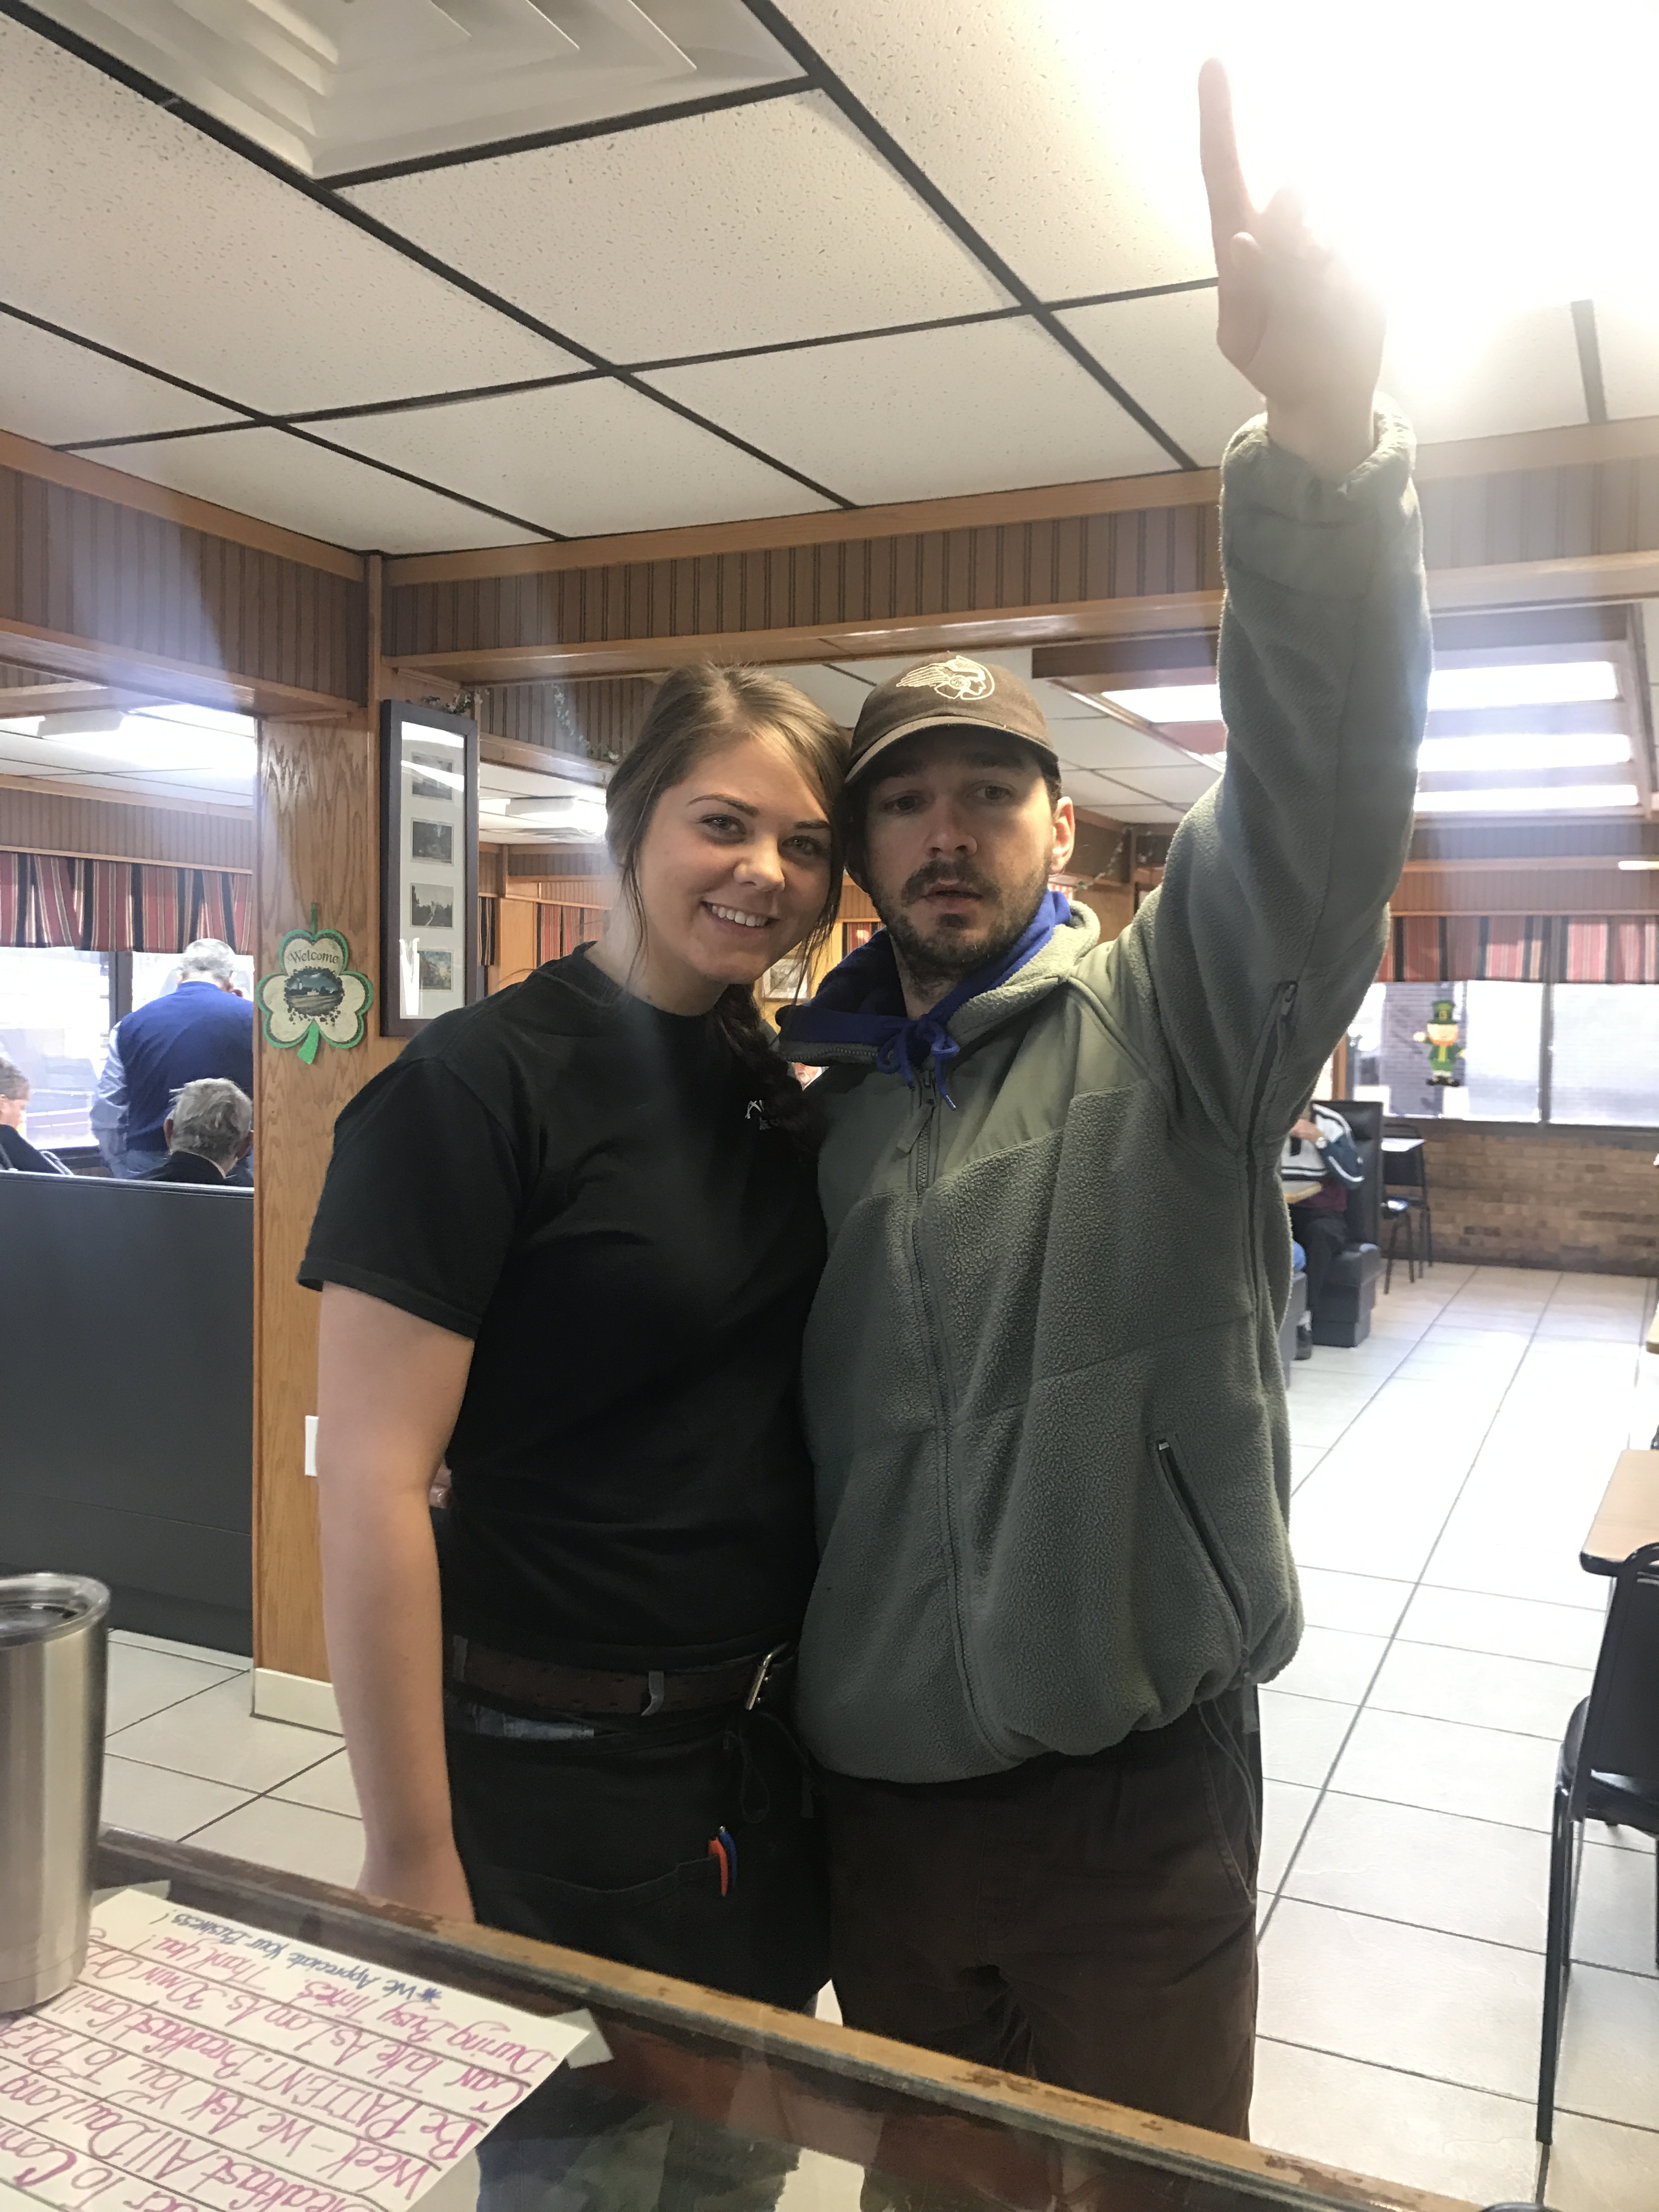 Aunt Bea's restaurant employees like Laiken Morrow (left) debated whether he was Shia LeBeouf.  When they asked, he said yes.